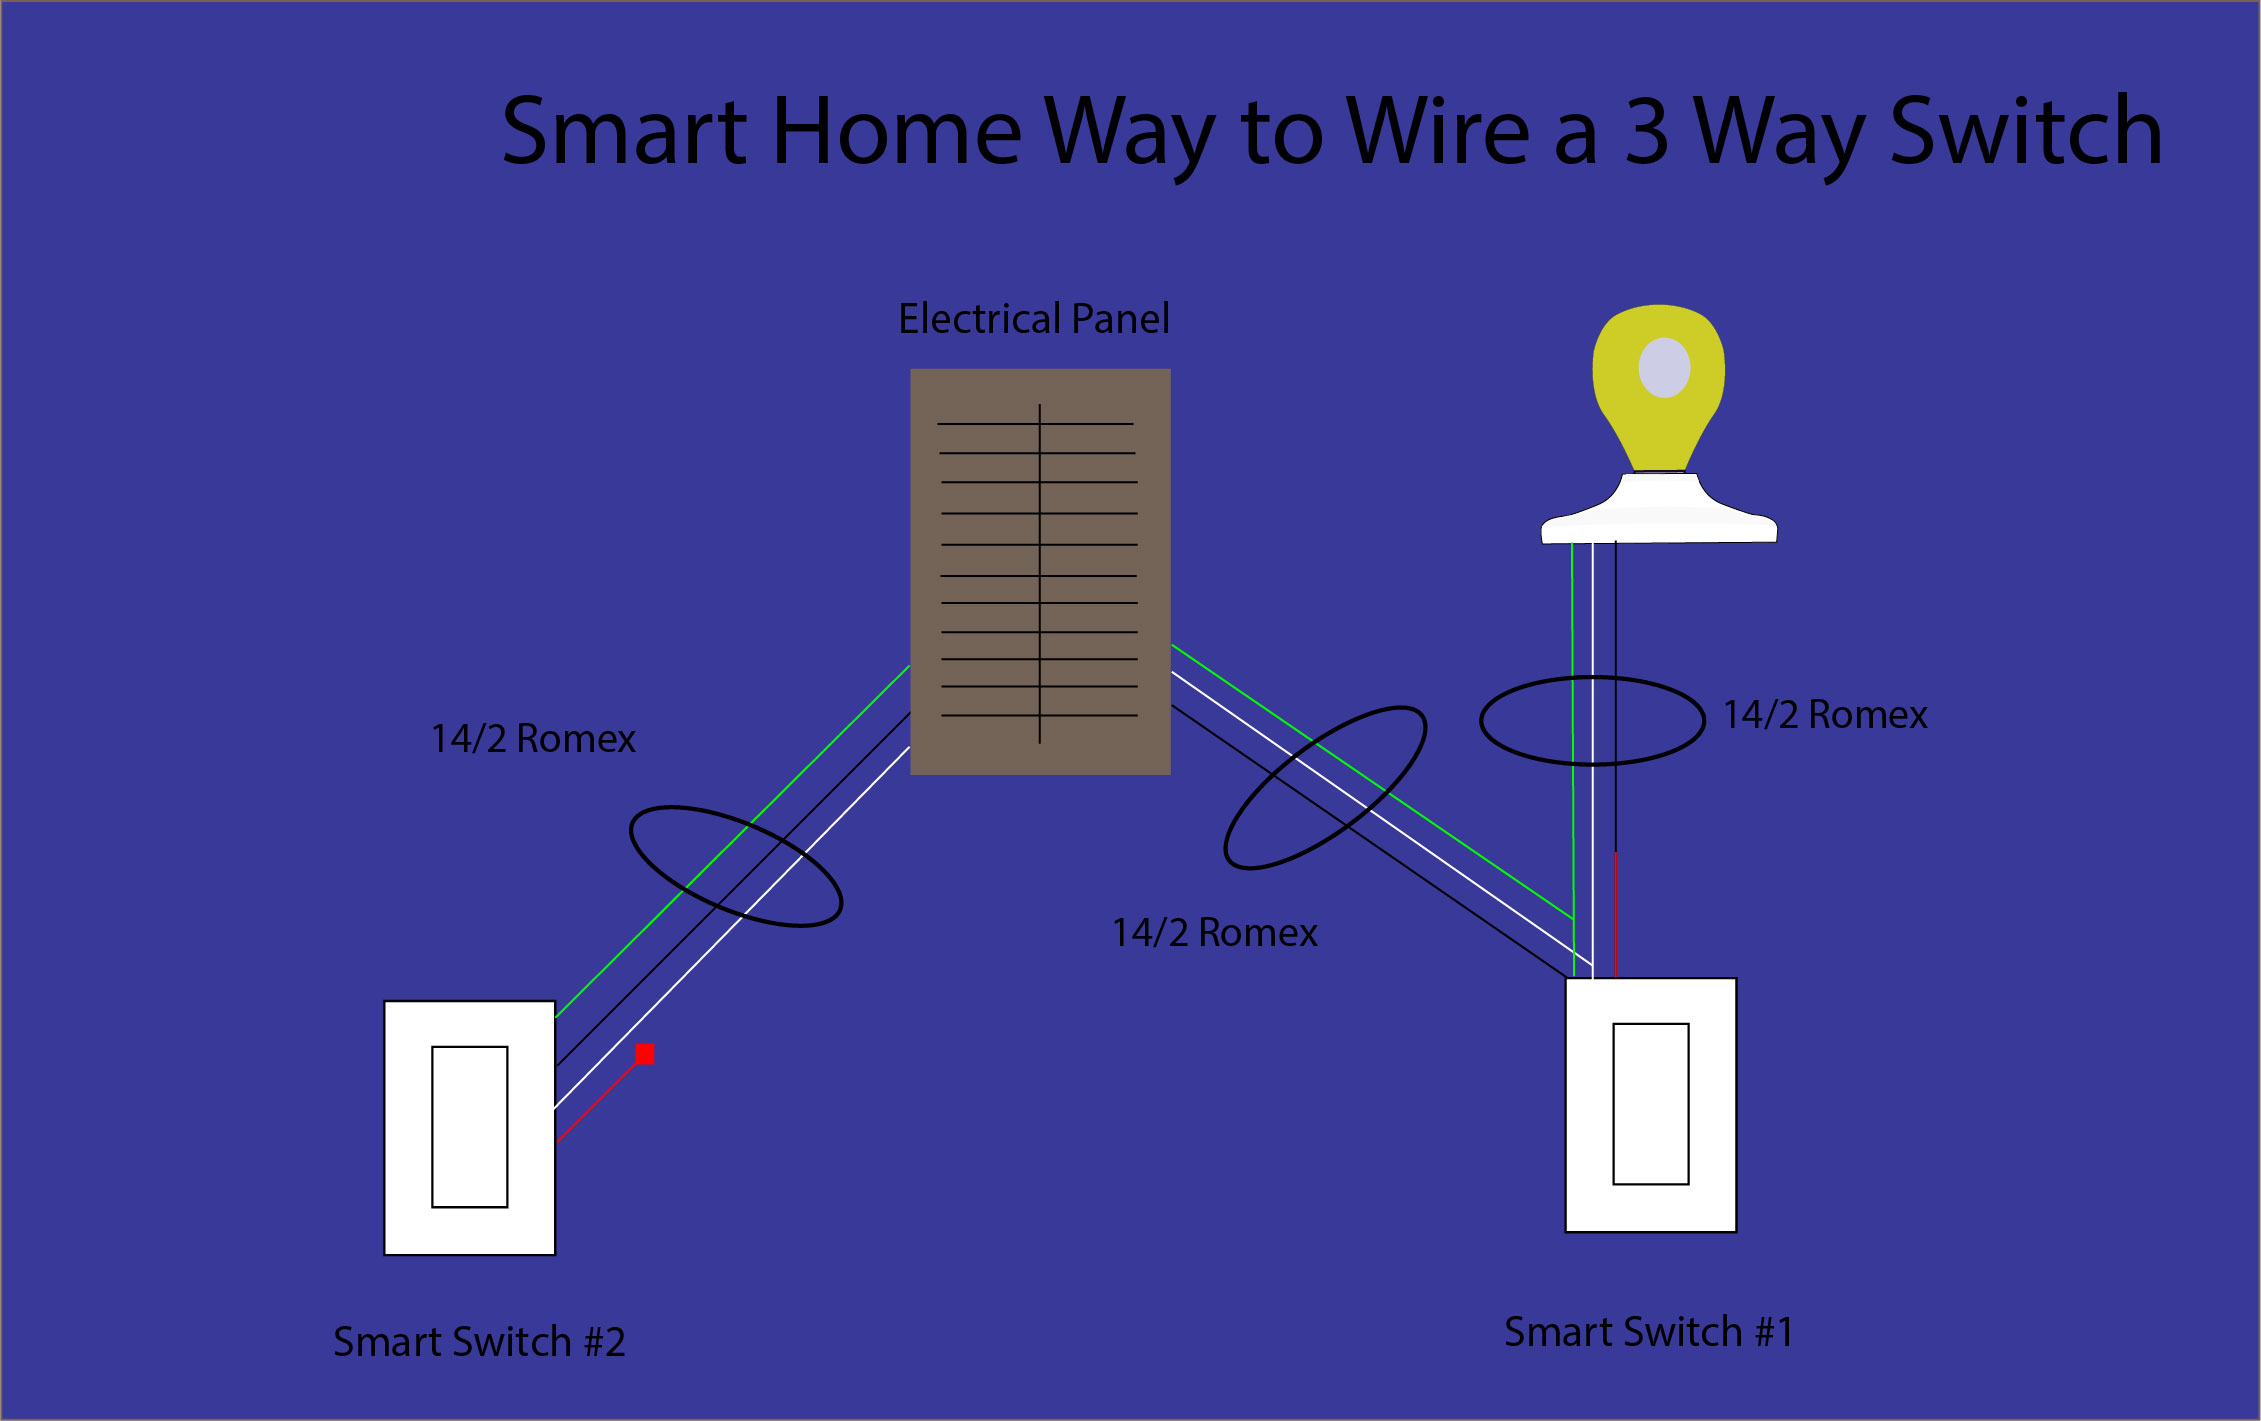 4 way switch wiring diagram 14 3 how to wire a    3       way       switch    smart home mastery  how to wire a    3       way       switch    smart home mastery